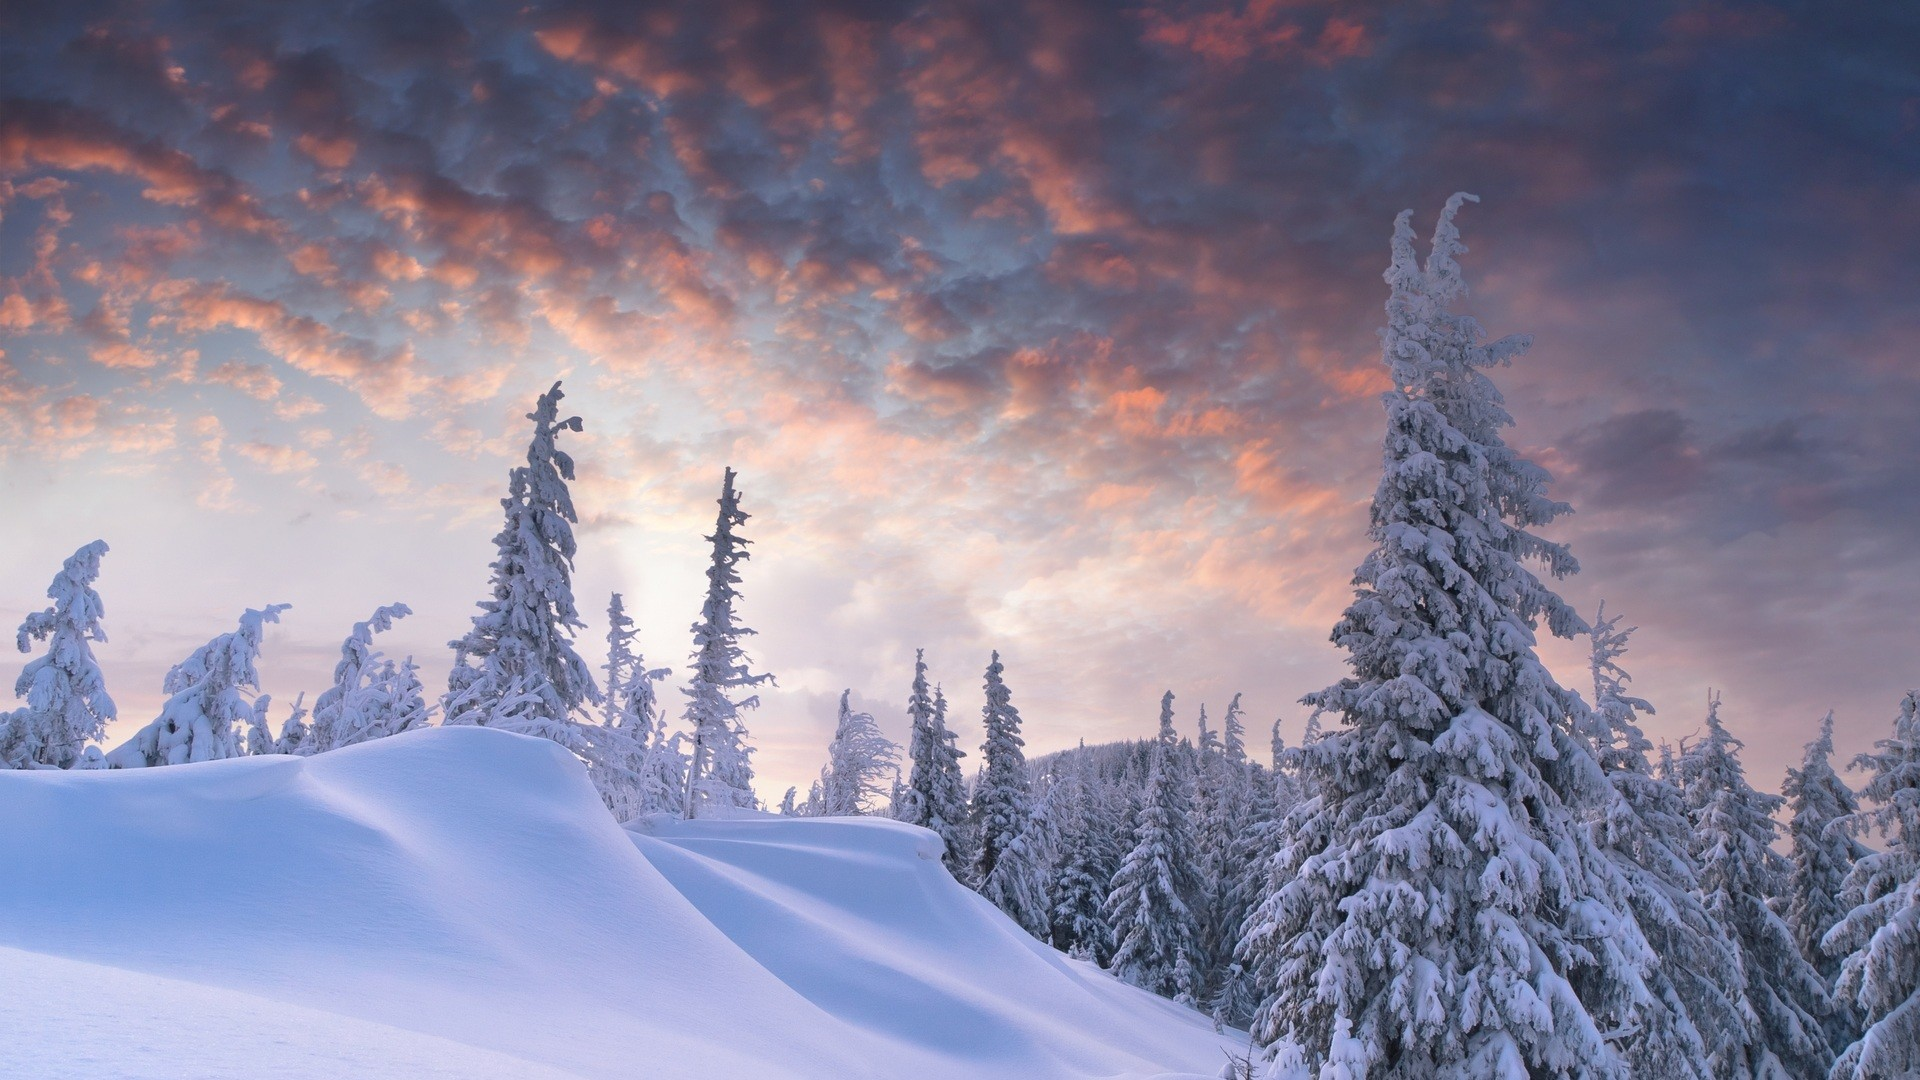 Hd Snow Wallpaper 82 Images